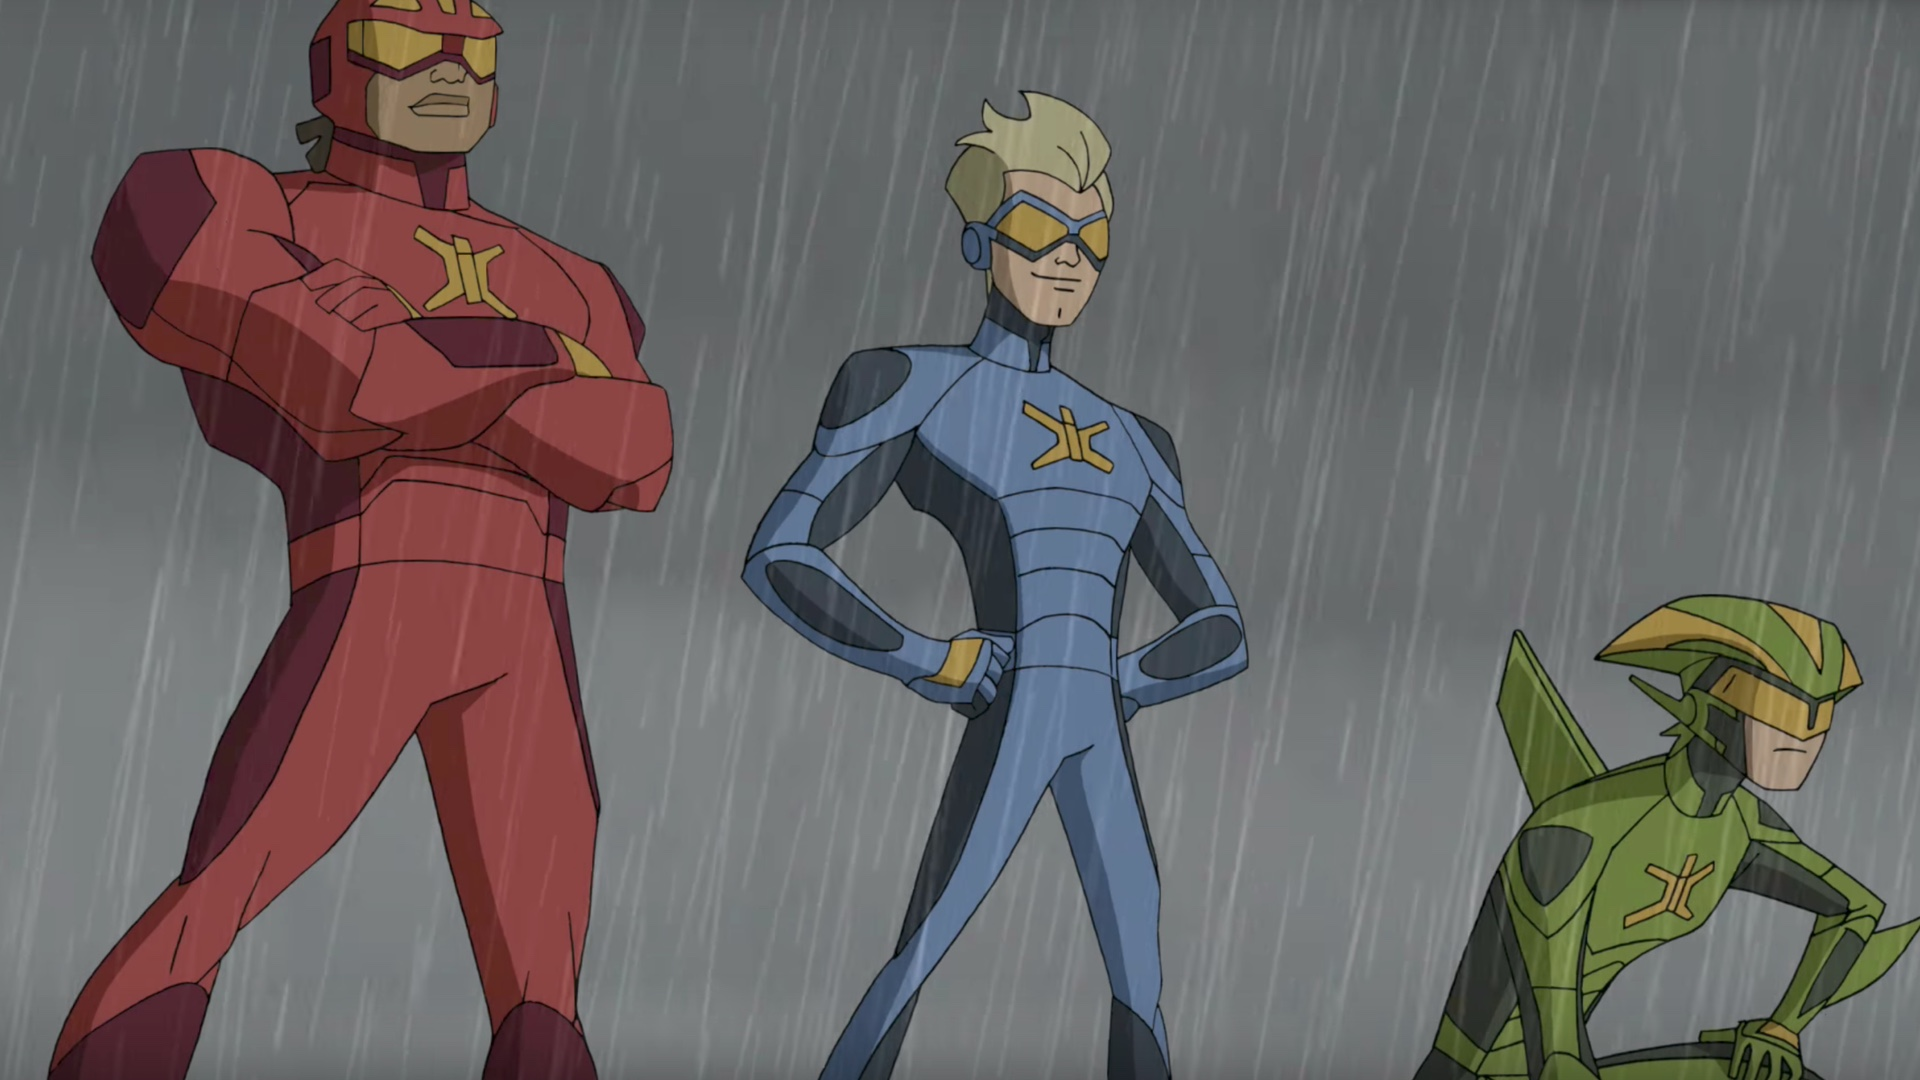 full-trailer-for-netflixs-stretch-armstrong-and-the-flex-fighters-animated-series-social.jpg